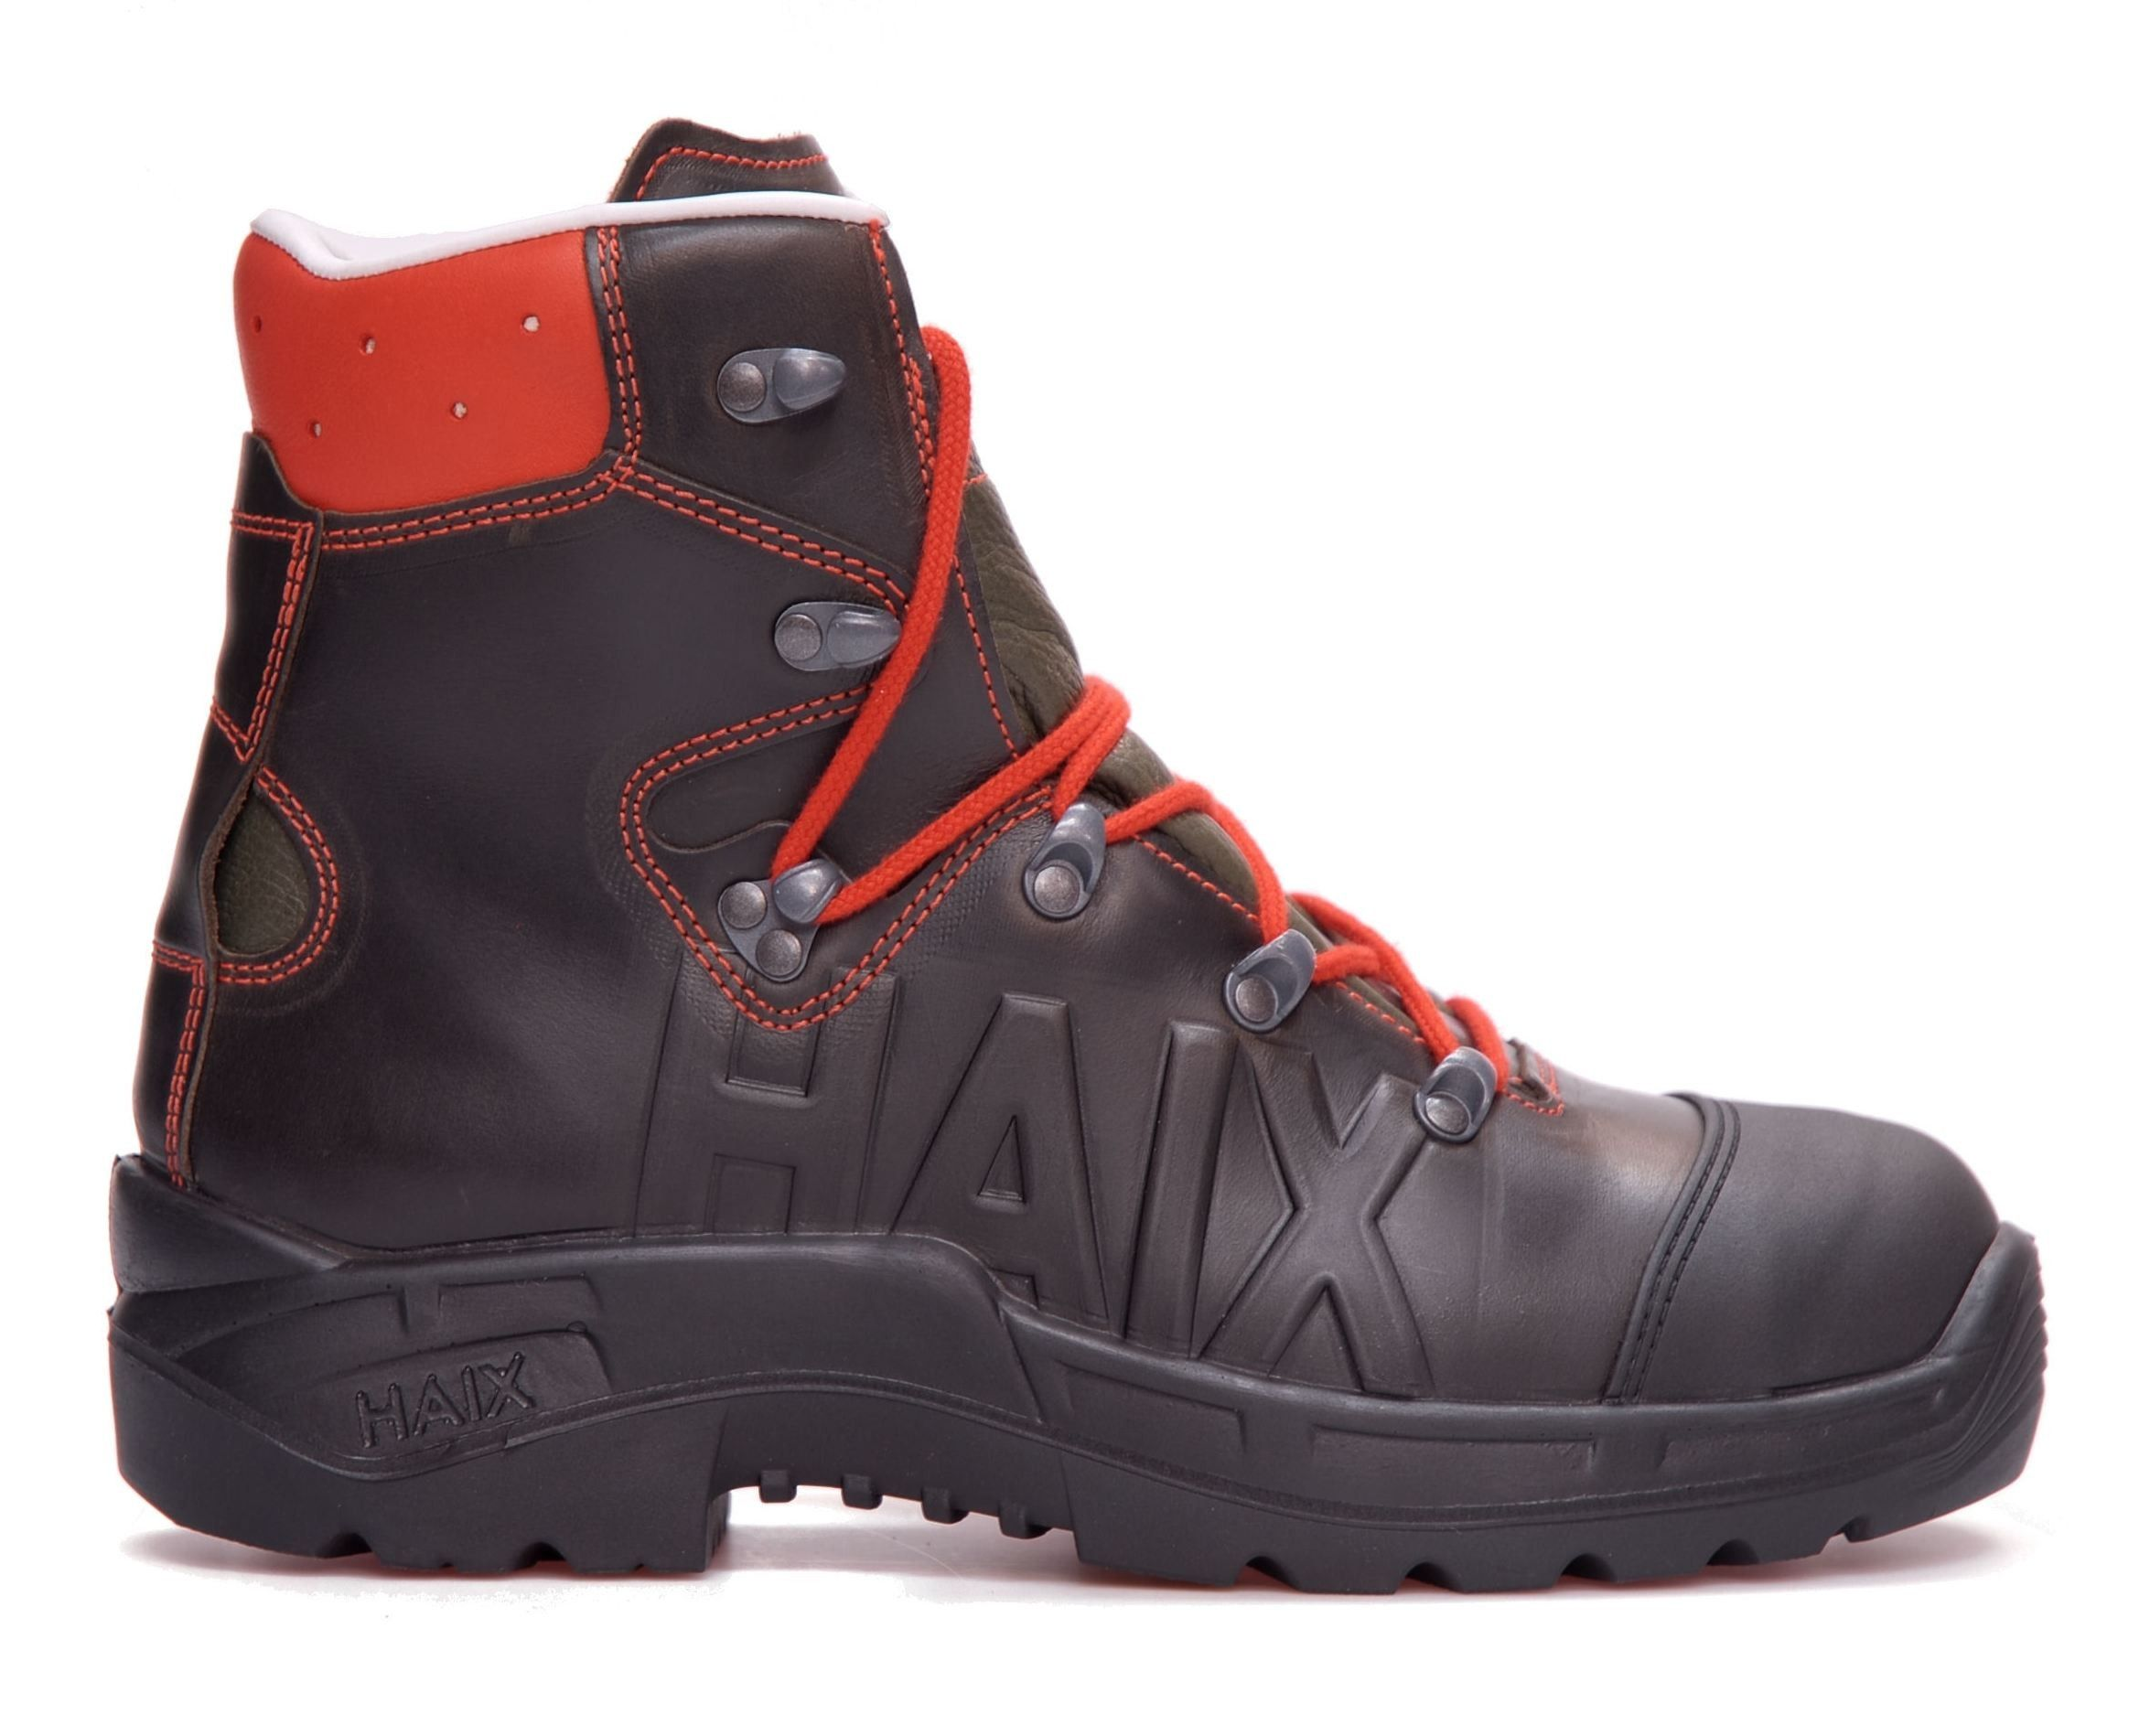 638e57ee345 Haix Boots For All People Over The World | haix boots | Boots ...